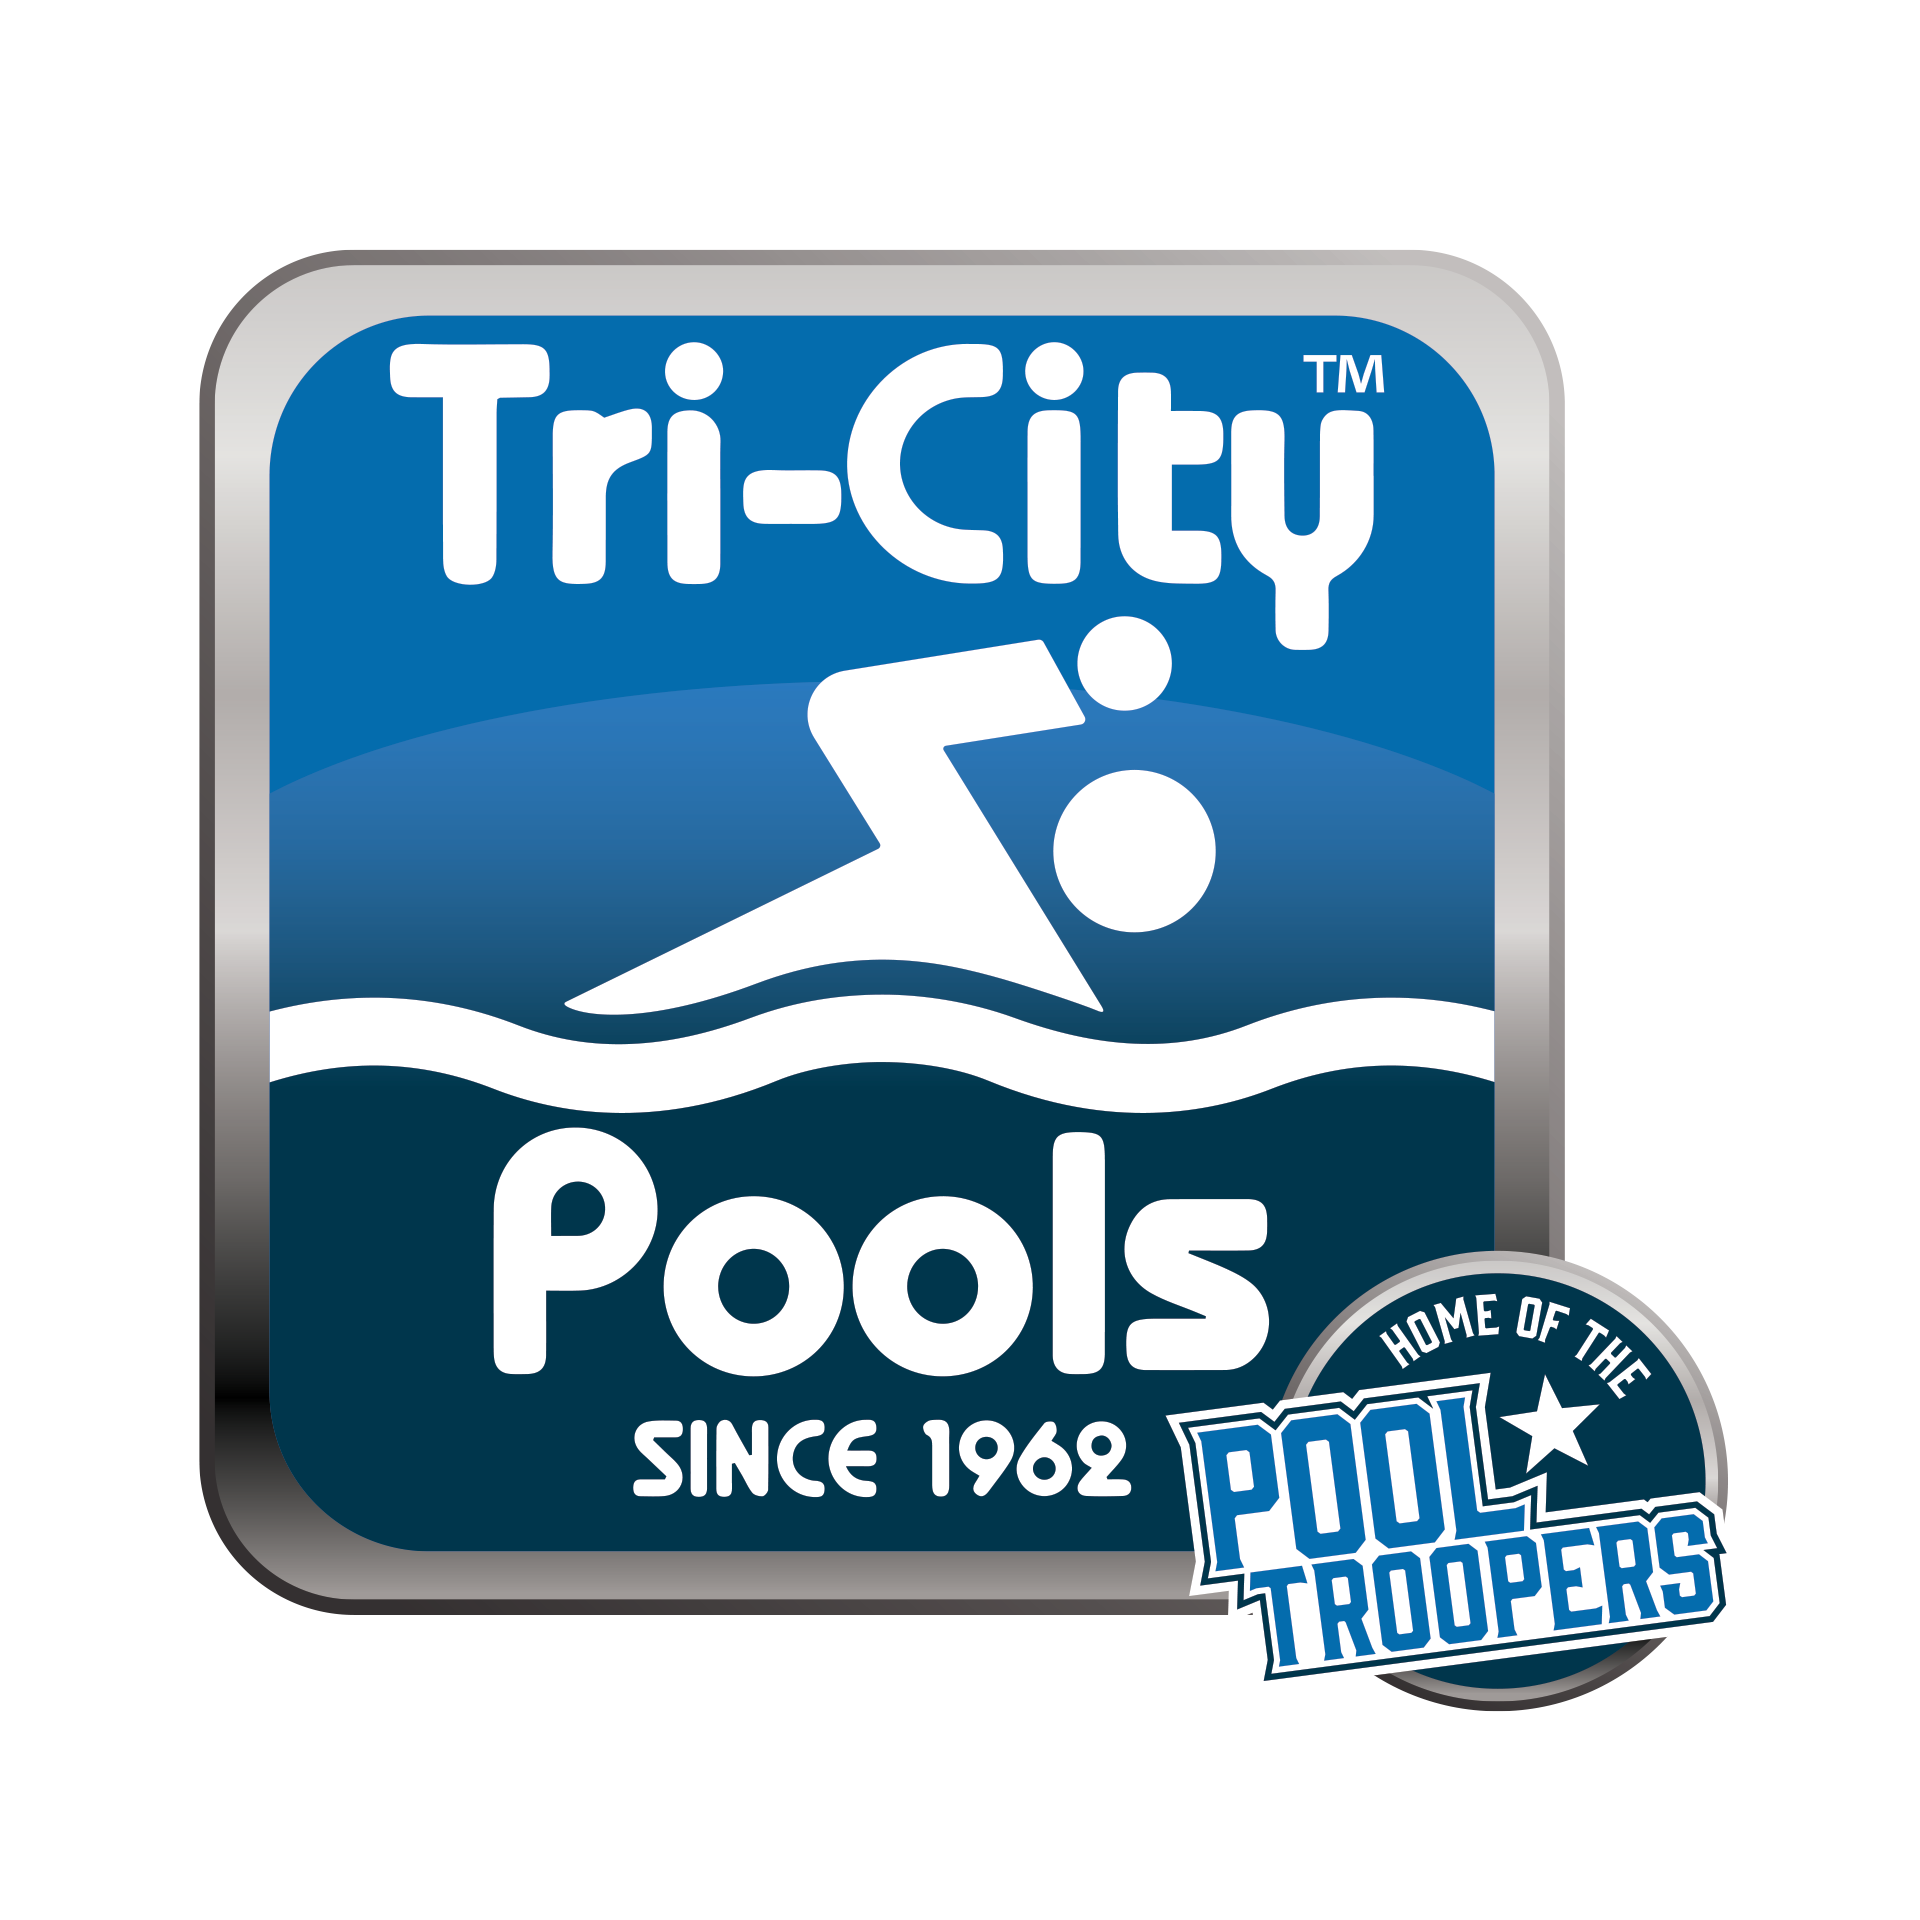 Pool Troopers Partners with Tri-City Pools to Expand Southwest Florida Footprint